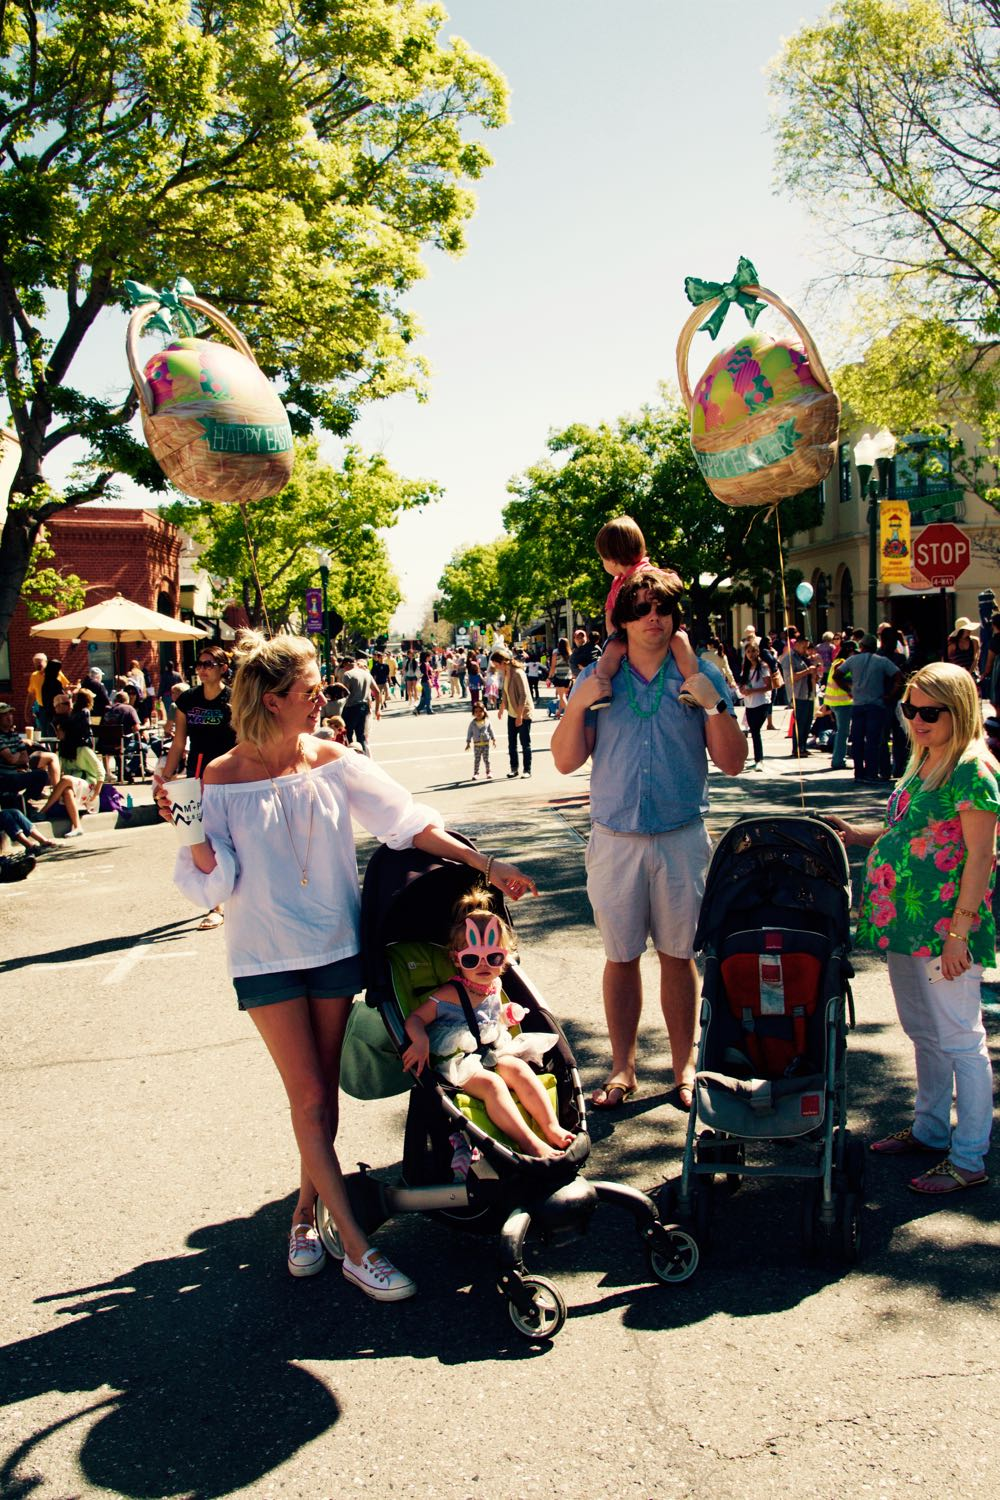 Easter Day parade in Campbell, California